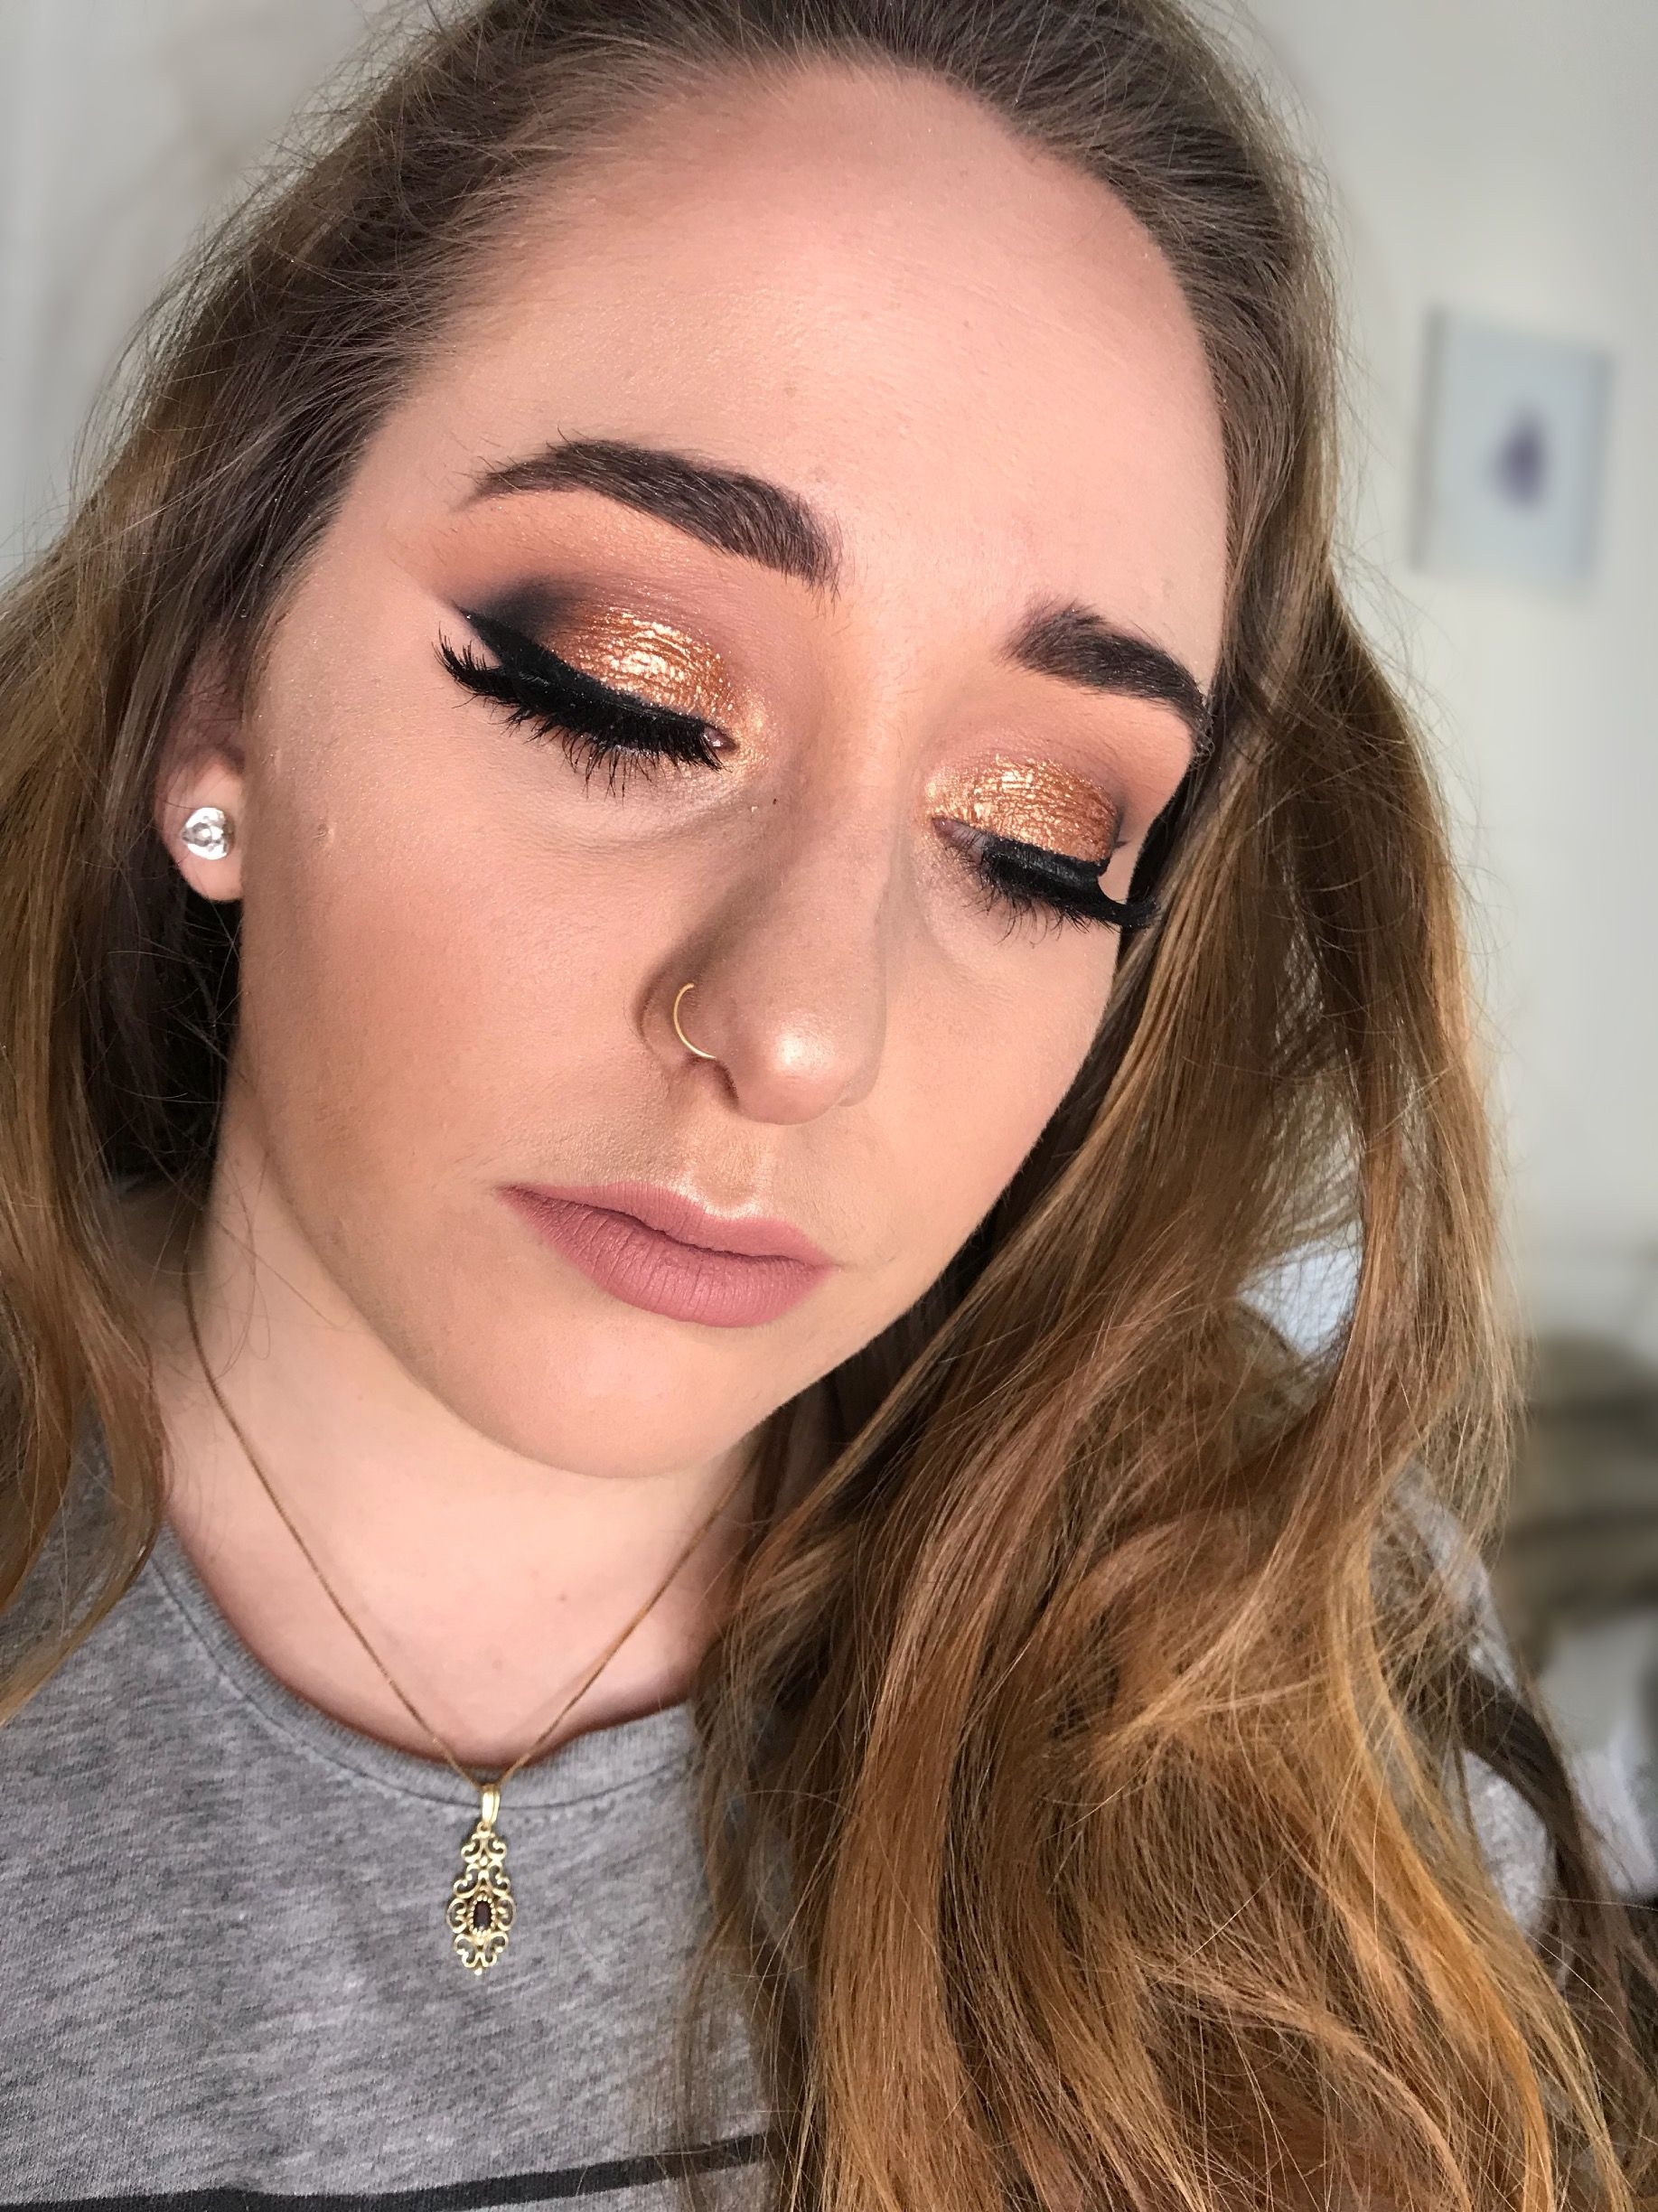 Pin by Gabby Rice on Looks on Looks on Looks! ️ Gold